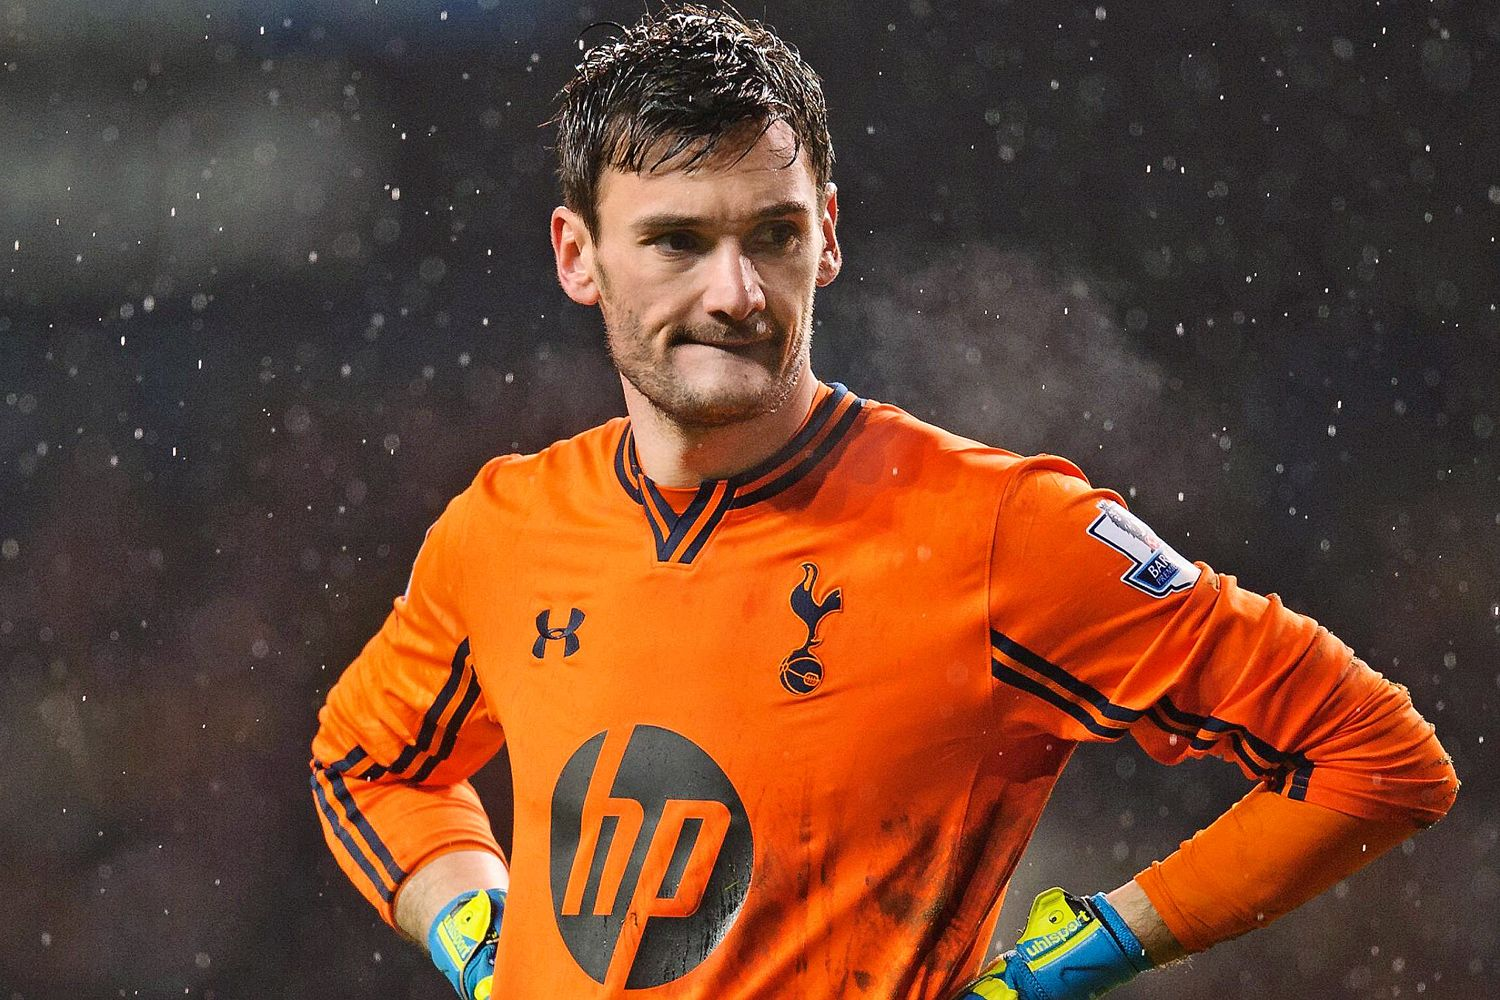 4b1e6744c Hugo Lloris hd wallpaper - http   www.wallpapersoccer.com hugo